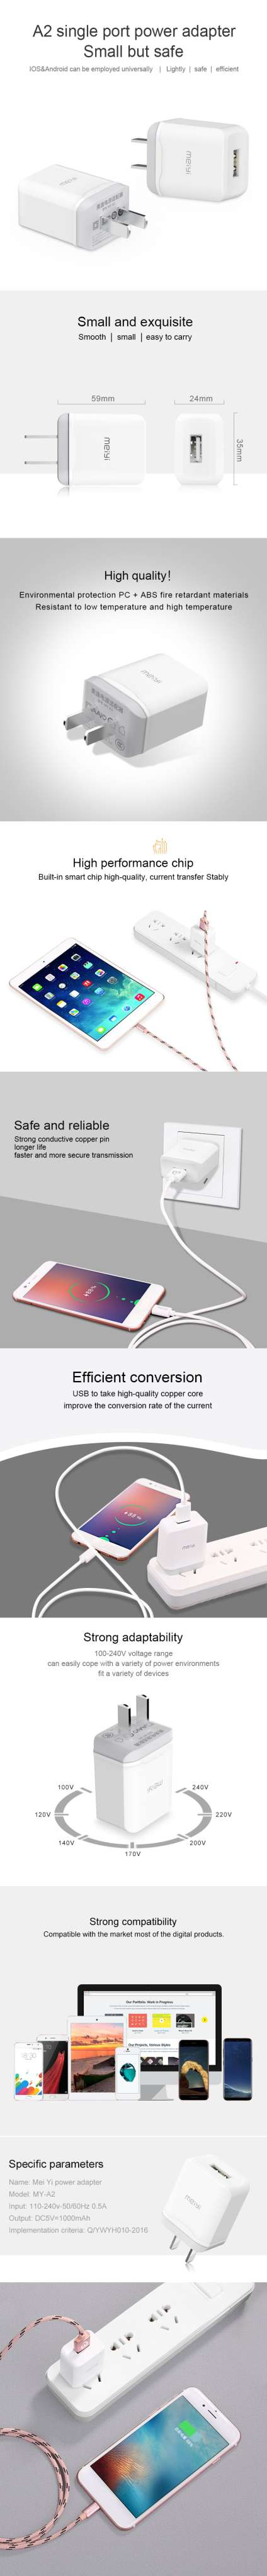 meiyi wall type usb charger 5v1a.jpg